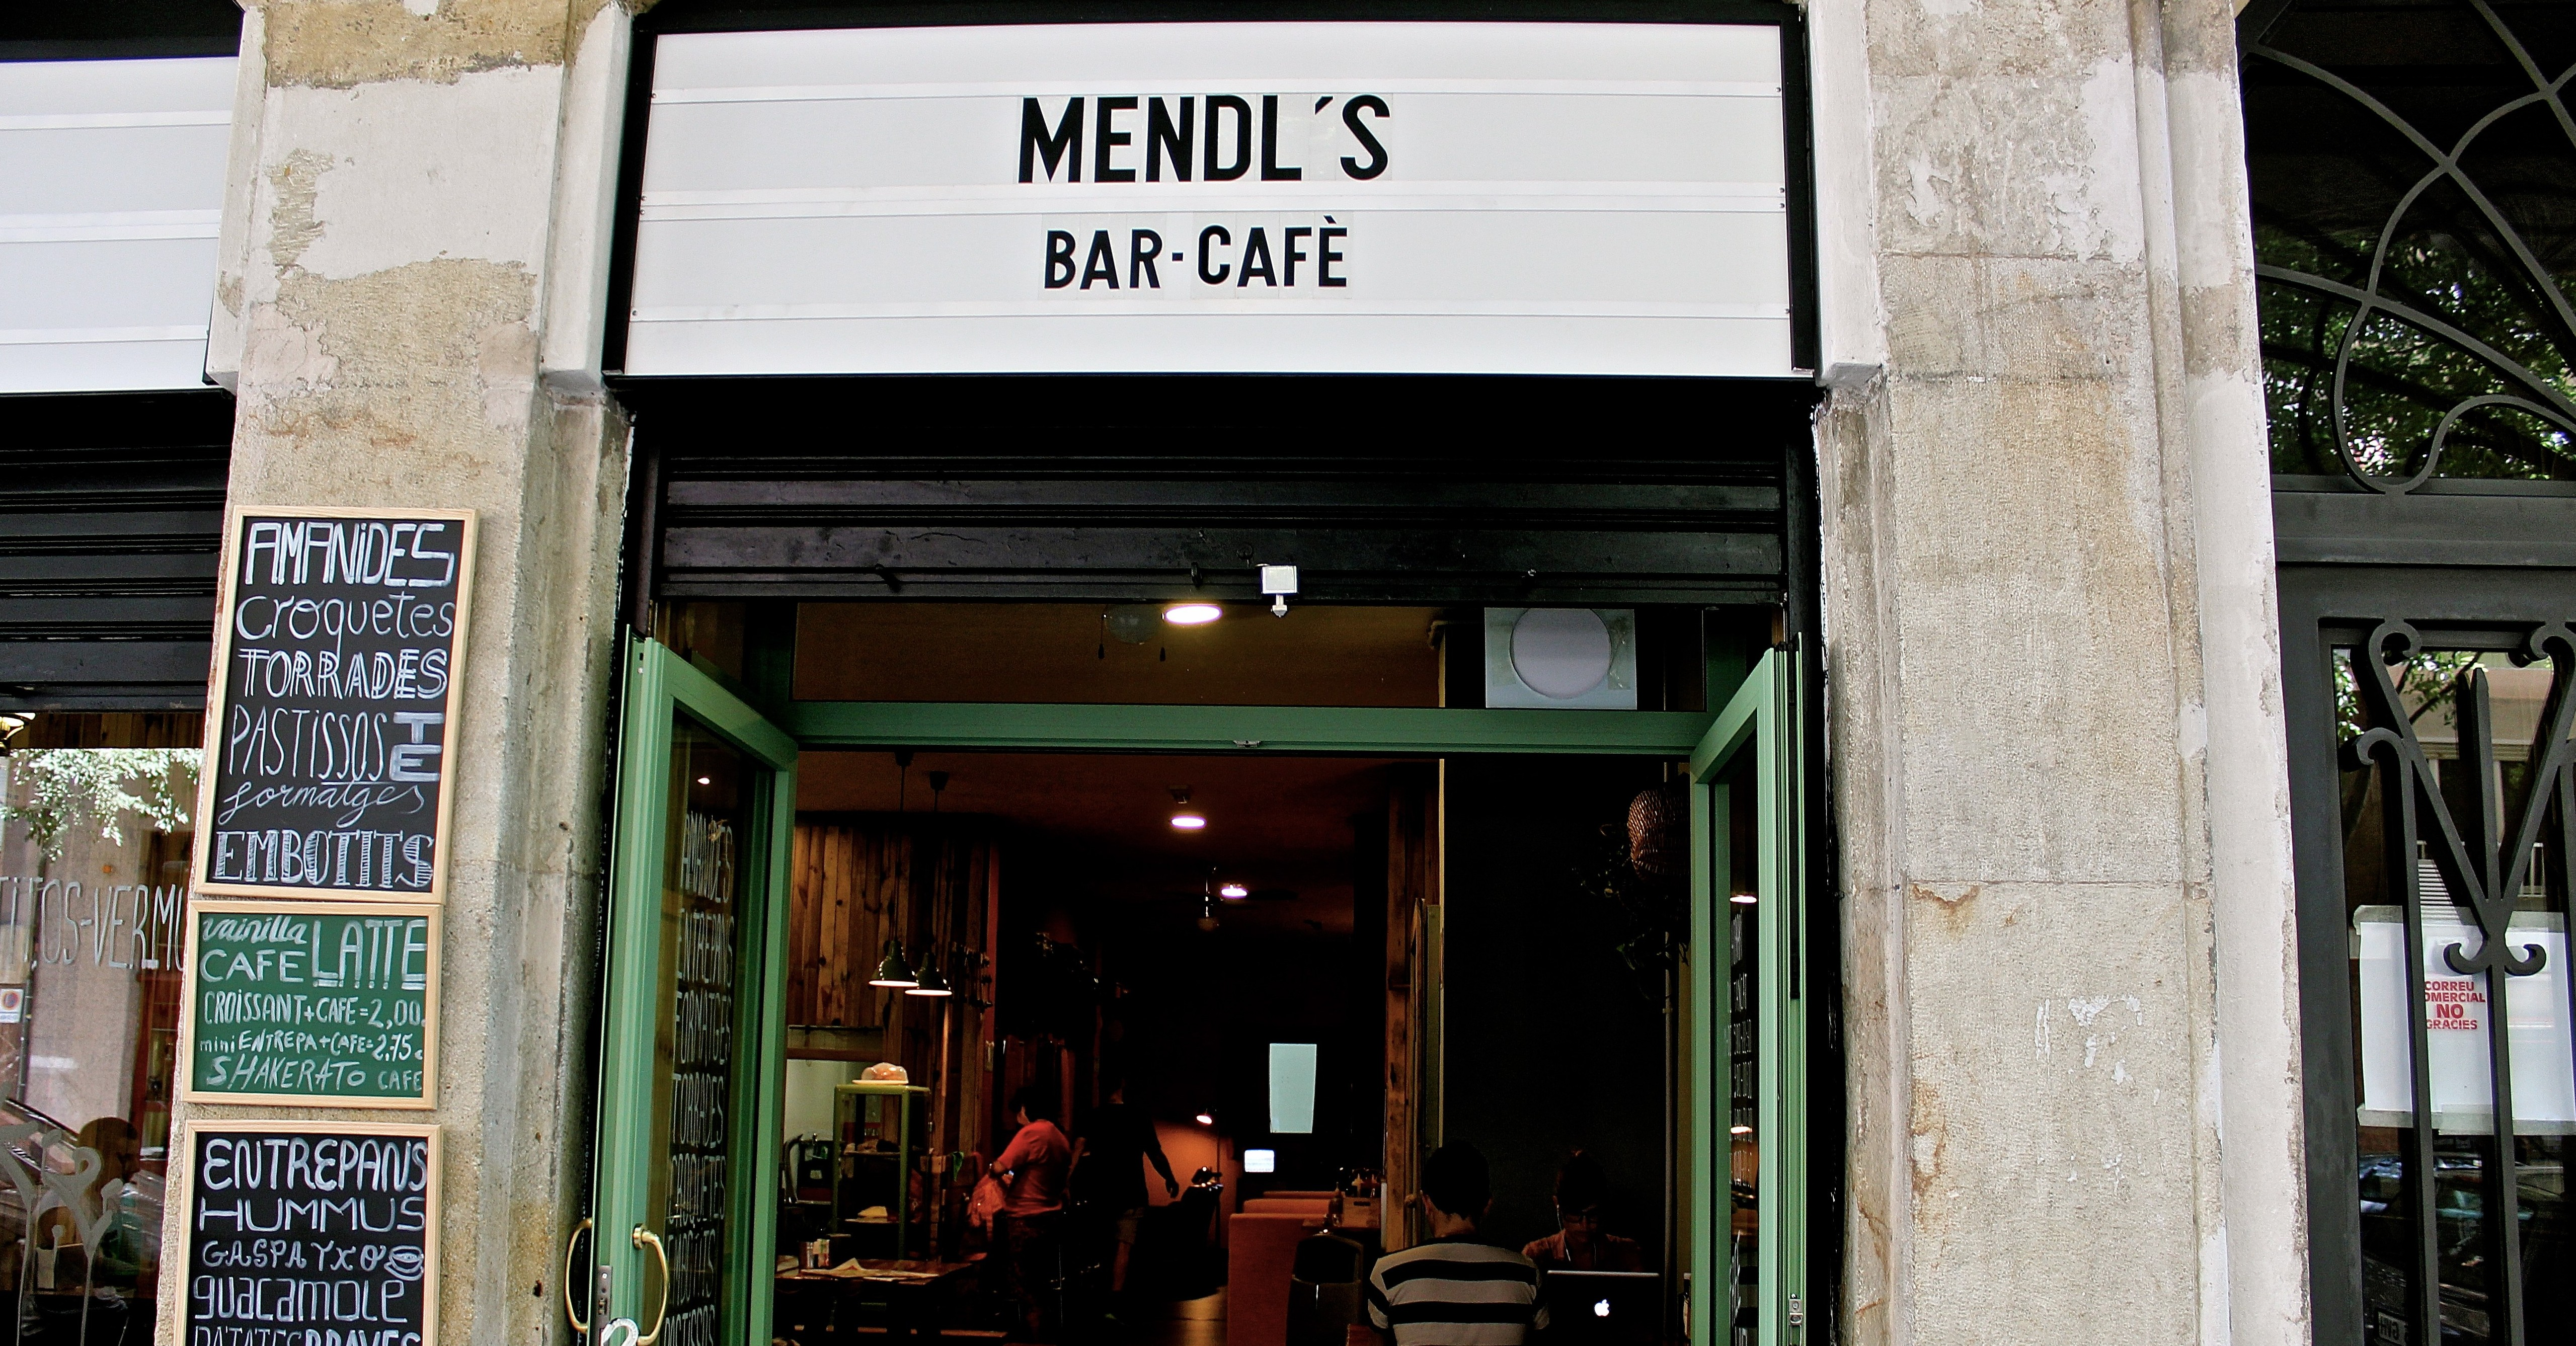 Getting to Know Mendl's, a Wes Anderson-Themed Cafe